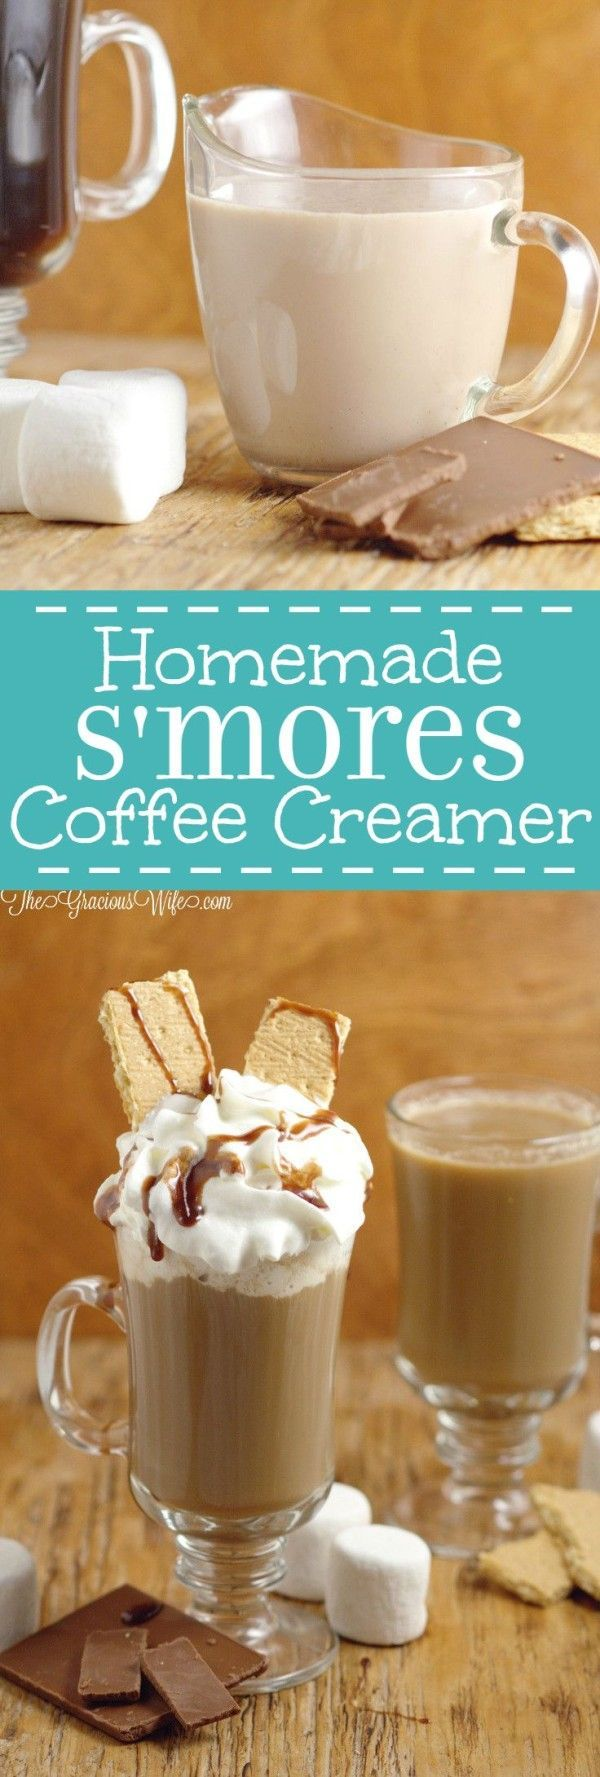 Homemade Smores Coffee Creamer a tasty sweet homemade